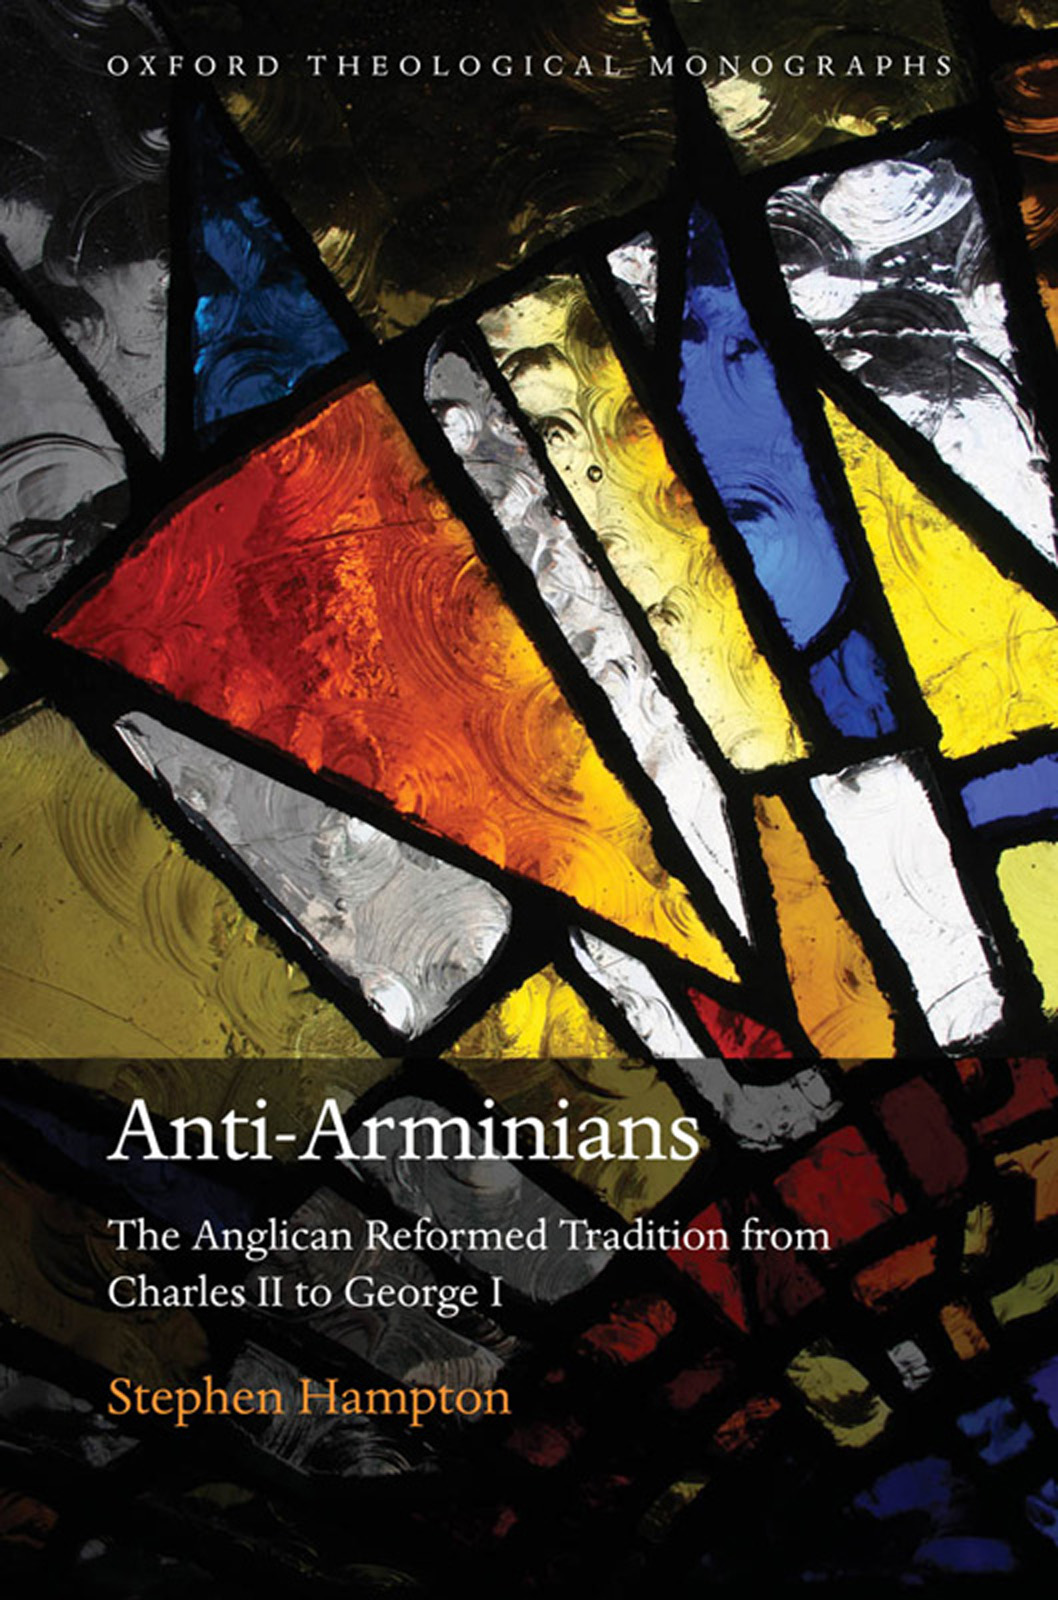 Anti-Arminians: The Anglican Reformed Tradition from Charles II to George I